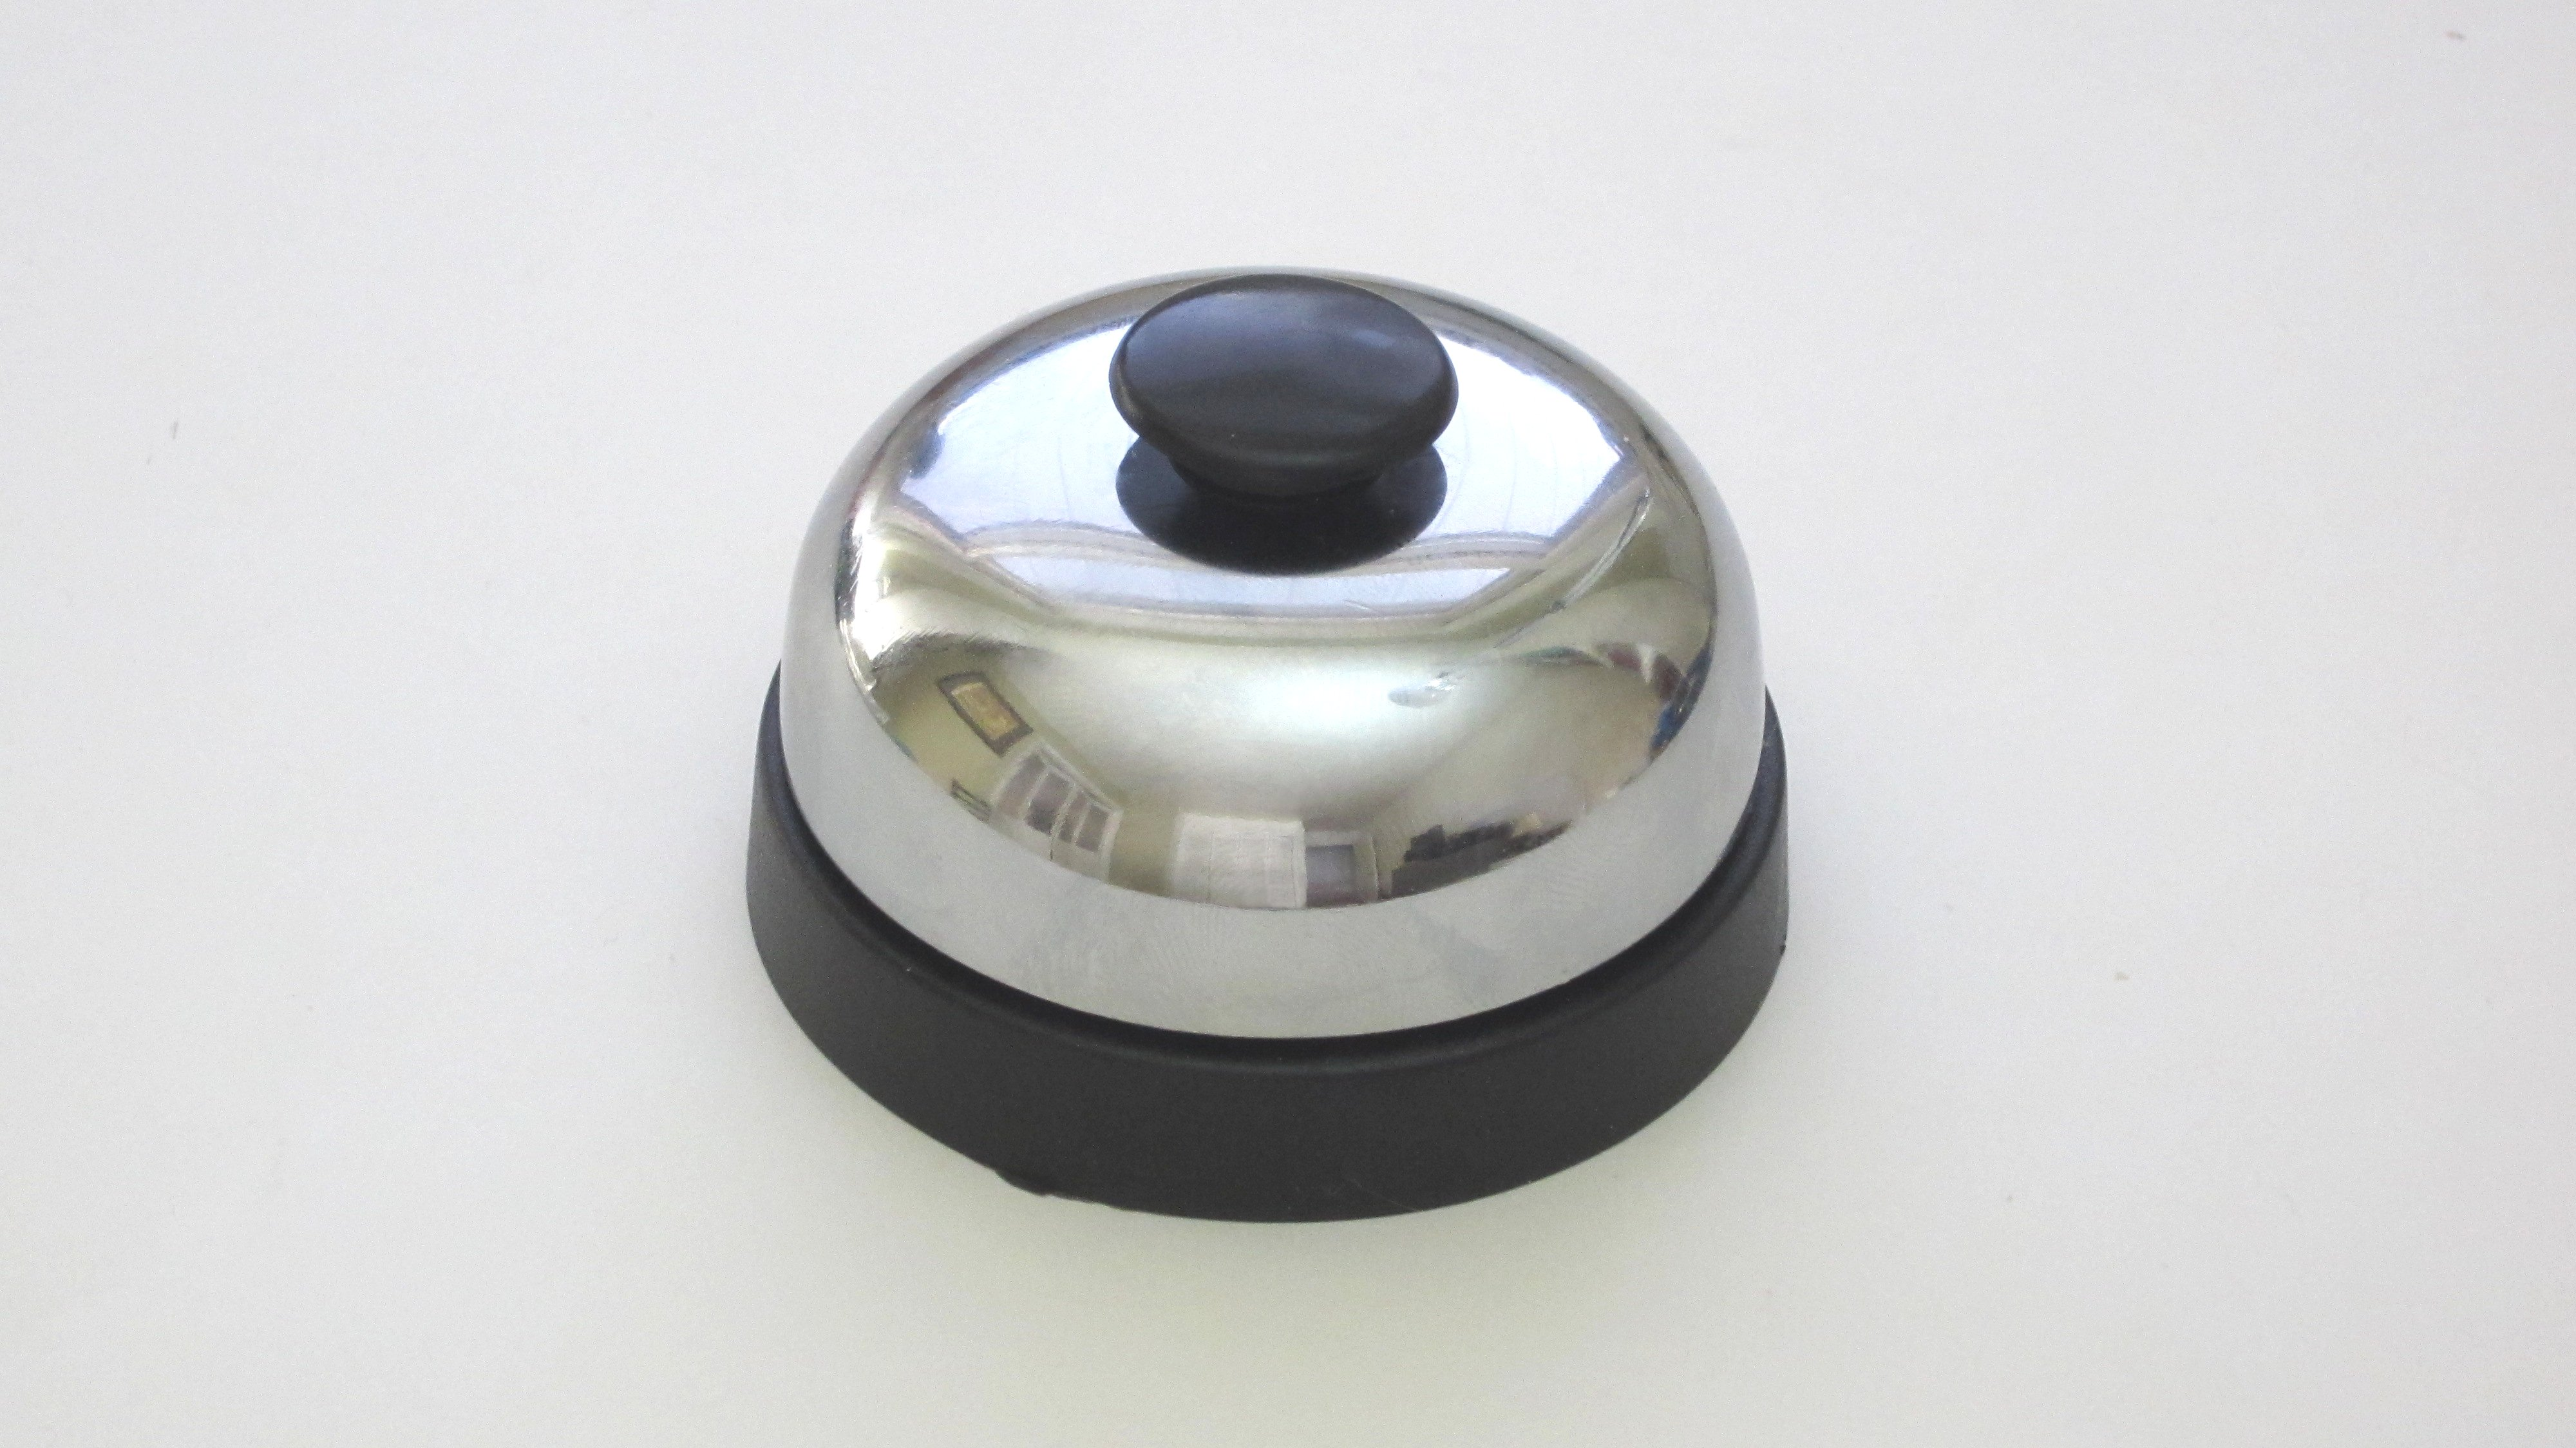 DIY Hacks & How To's: Desk Bell That Plays Sound Effects